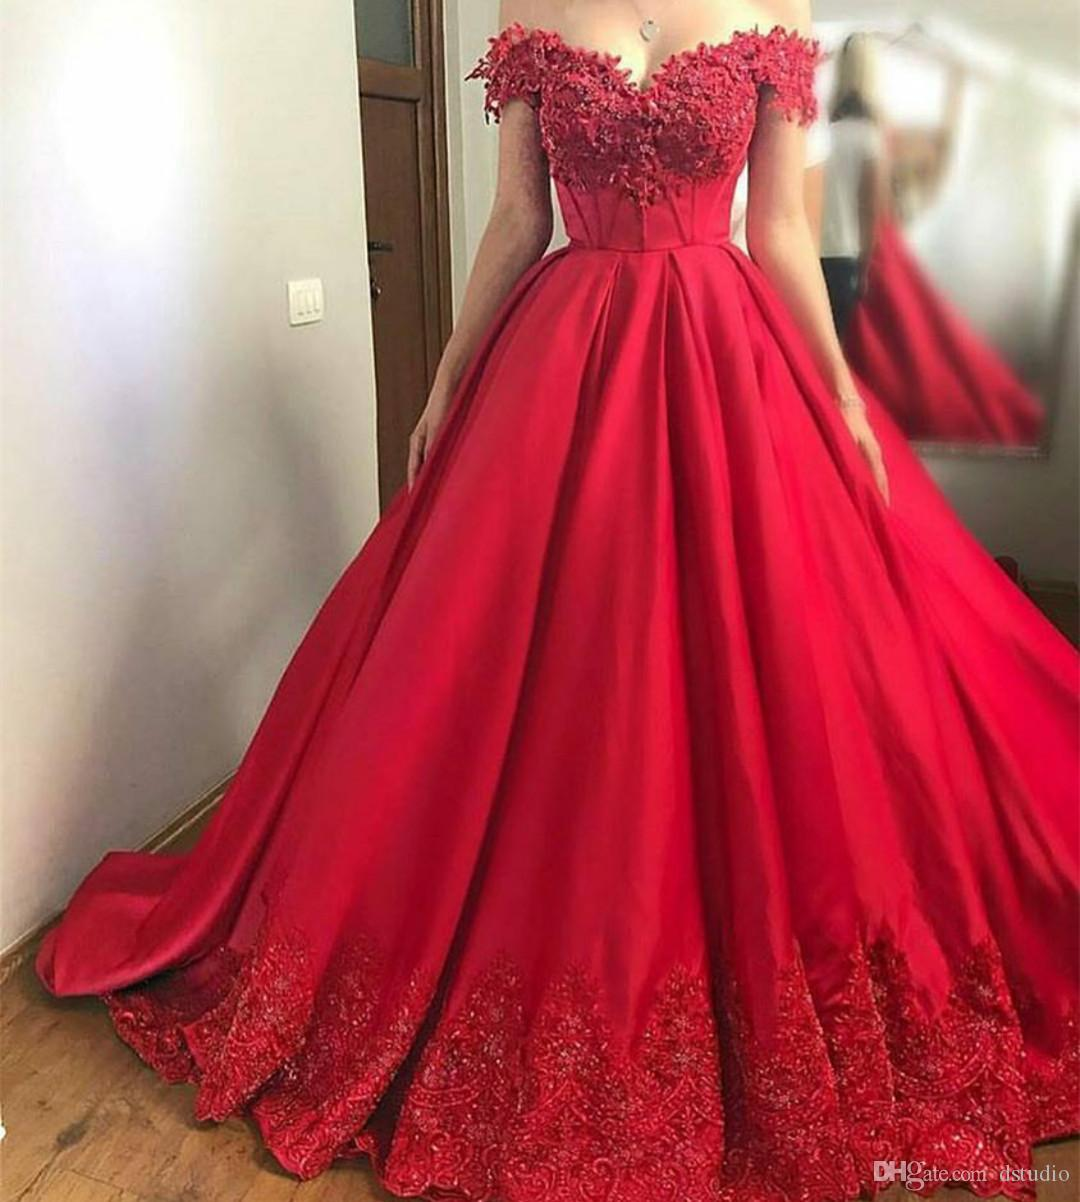 d9ff8d253eb High Waist Ball Gown Prom Dress Off Shoulder Satin With Floral Applique  Beads Sequins Sweep Train Evening Gowns Lace Up Back Tie Dye Prom Dresses  Usa Prom ...